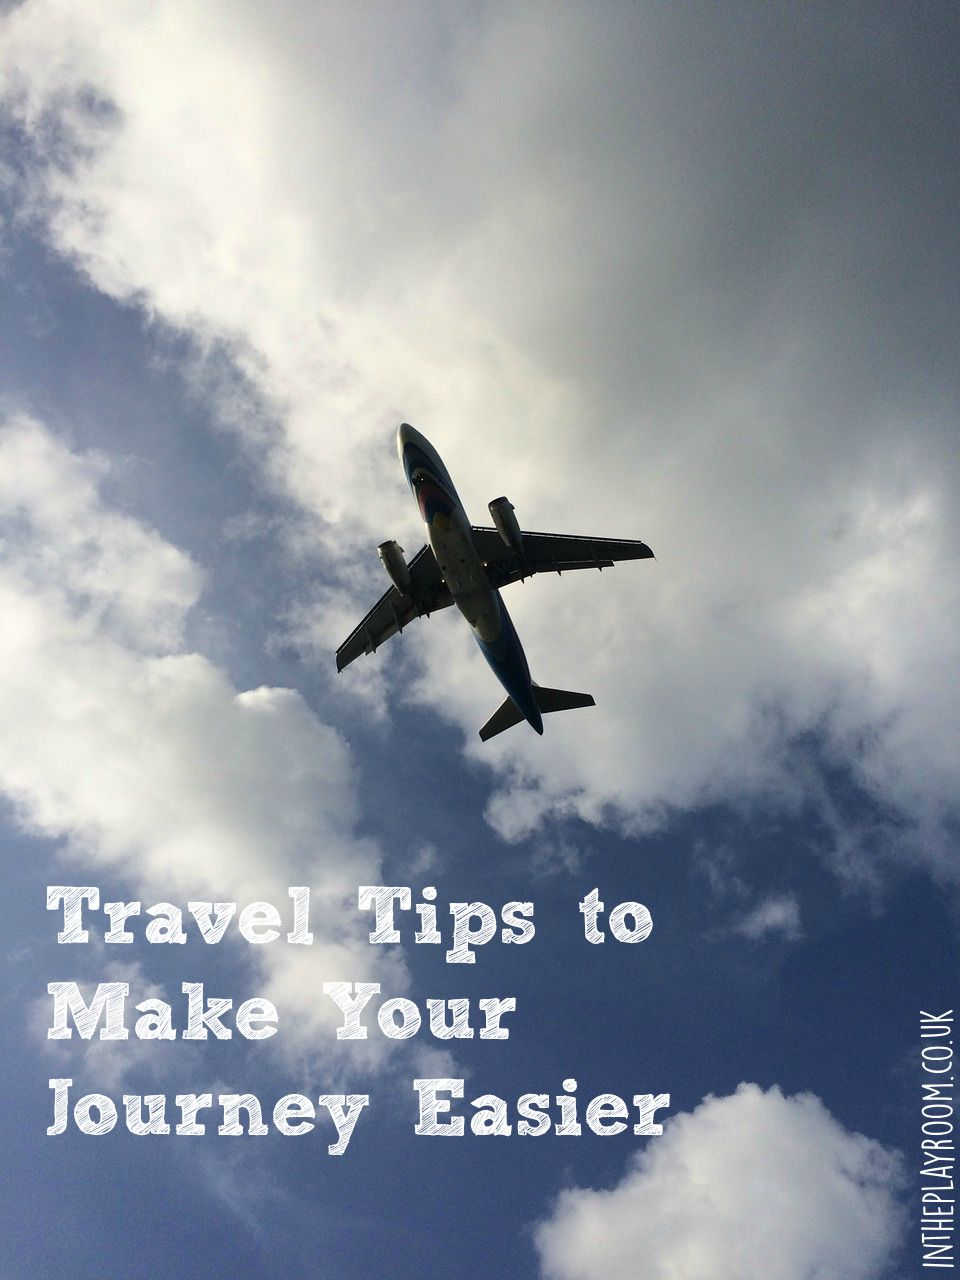 Travel tips to make your journey easier